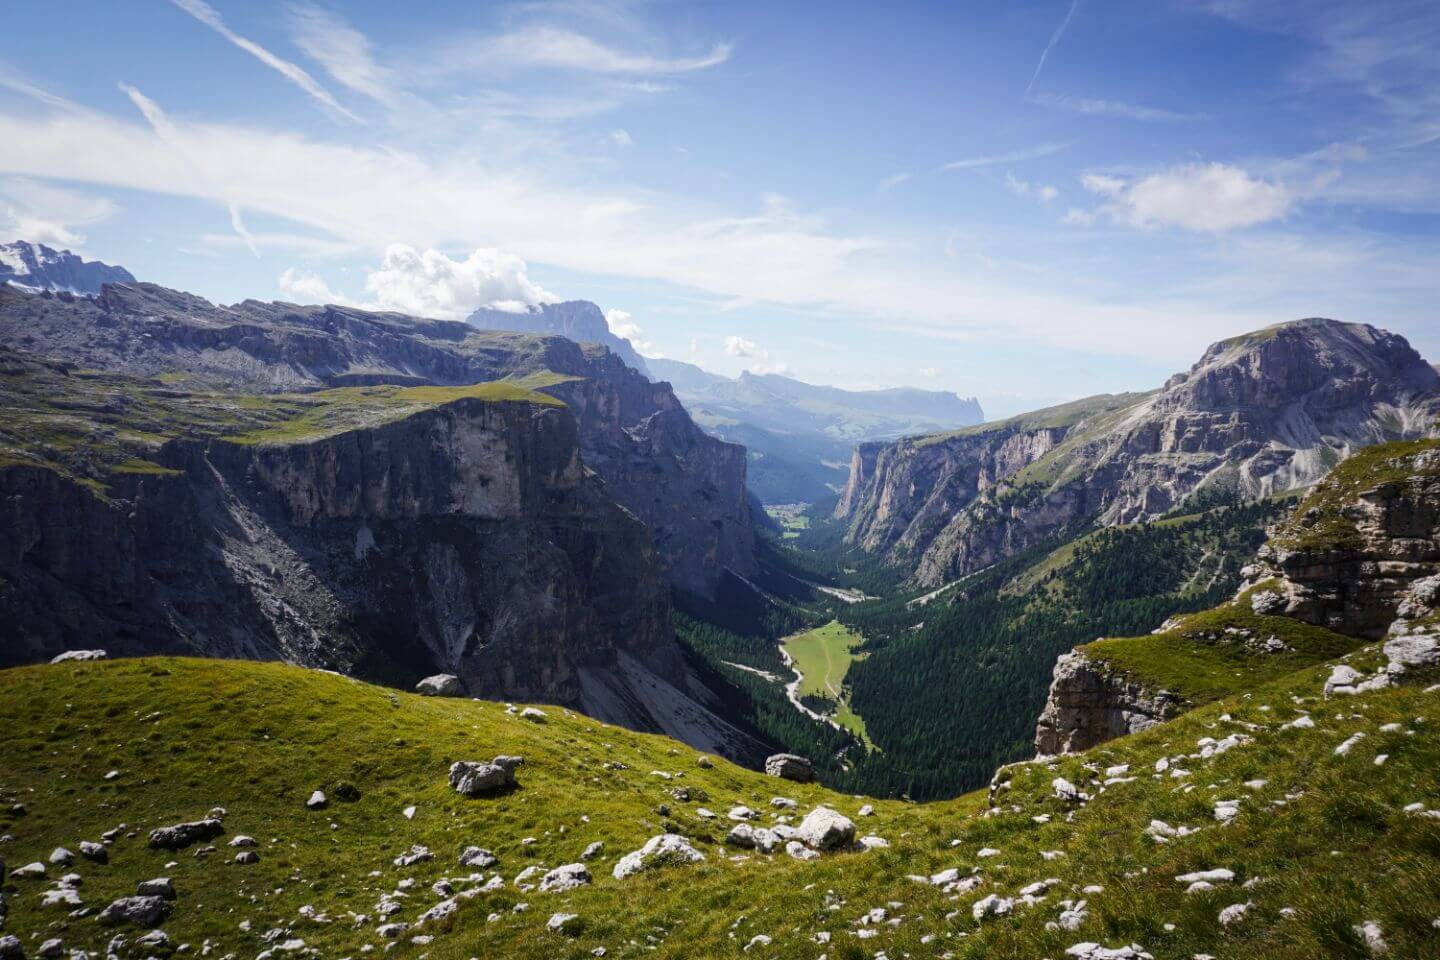 Vallunga / Langental View, Puez-Odle, Alta Badia Summer Hiking Guide